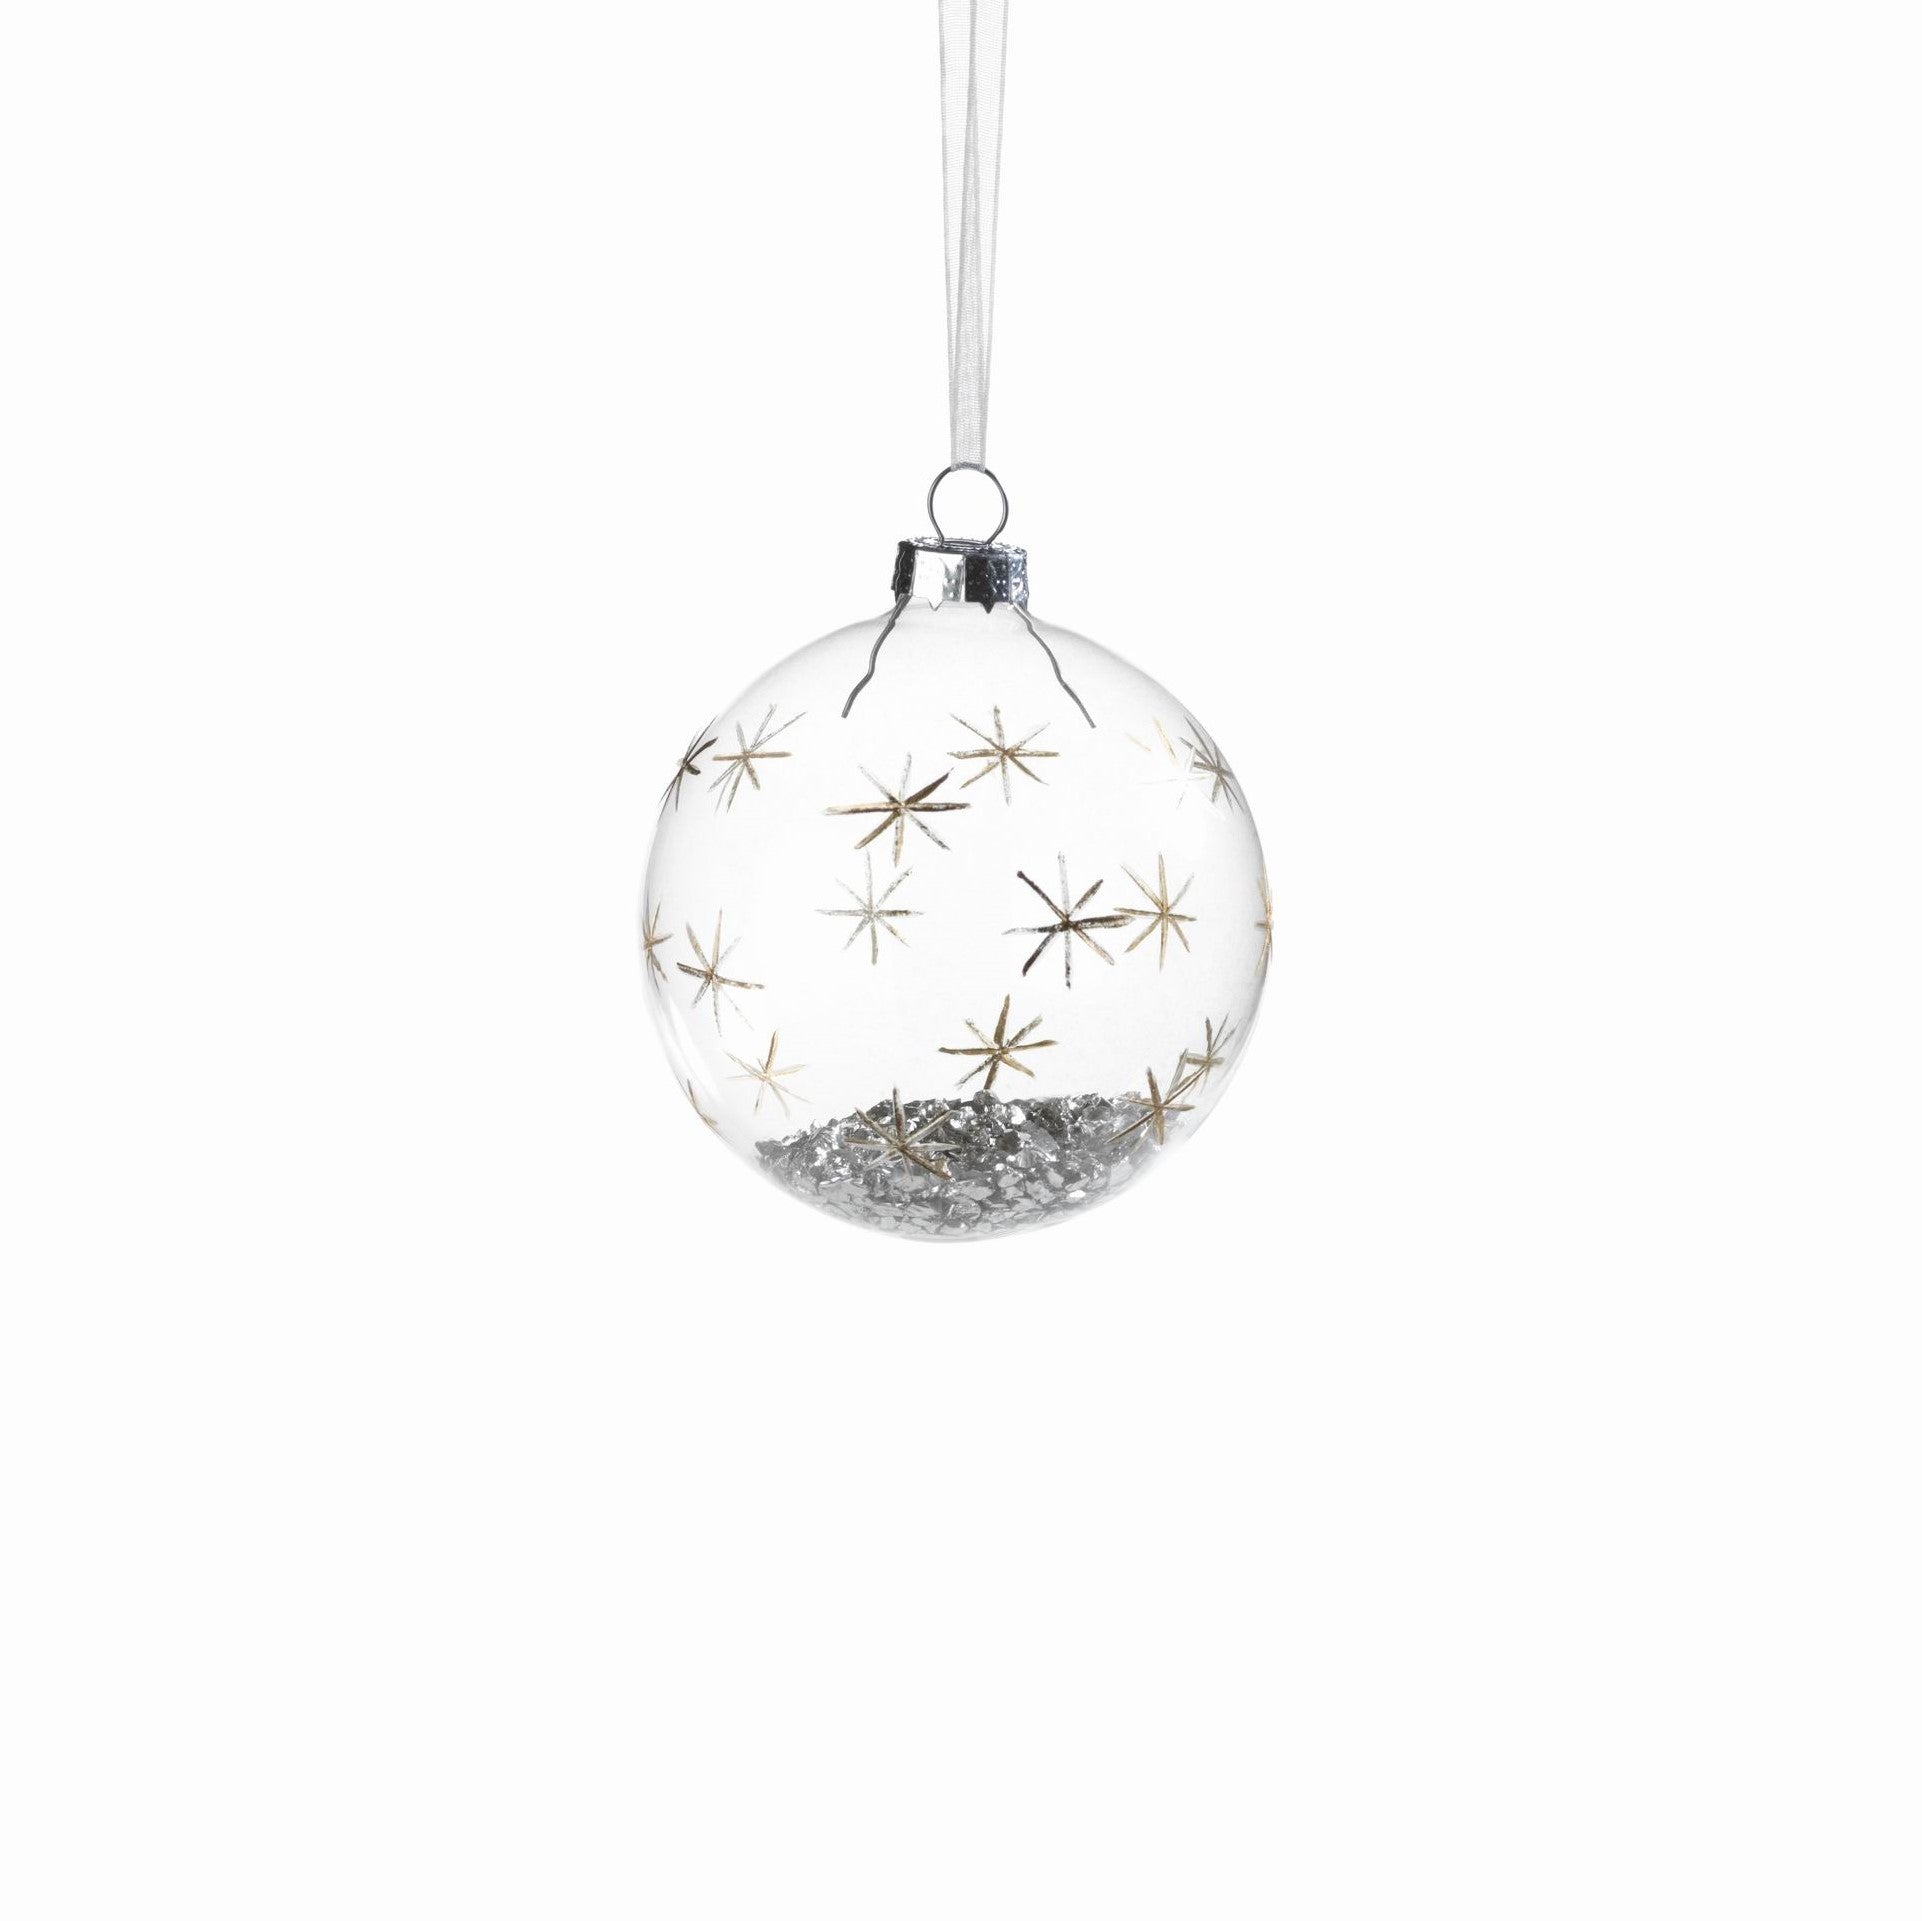 Clear Ball with Silver Confetti and Decor - CARLYLE AVENUE